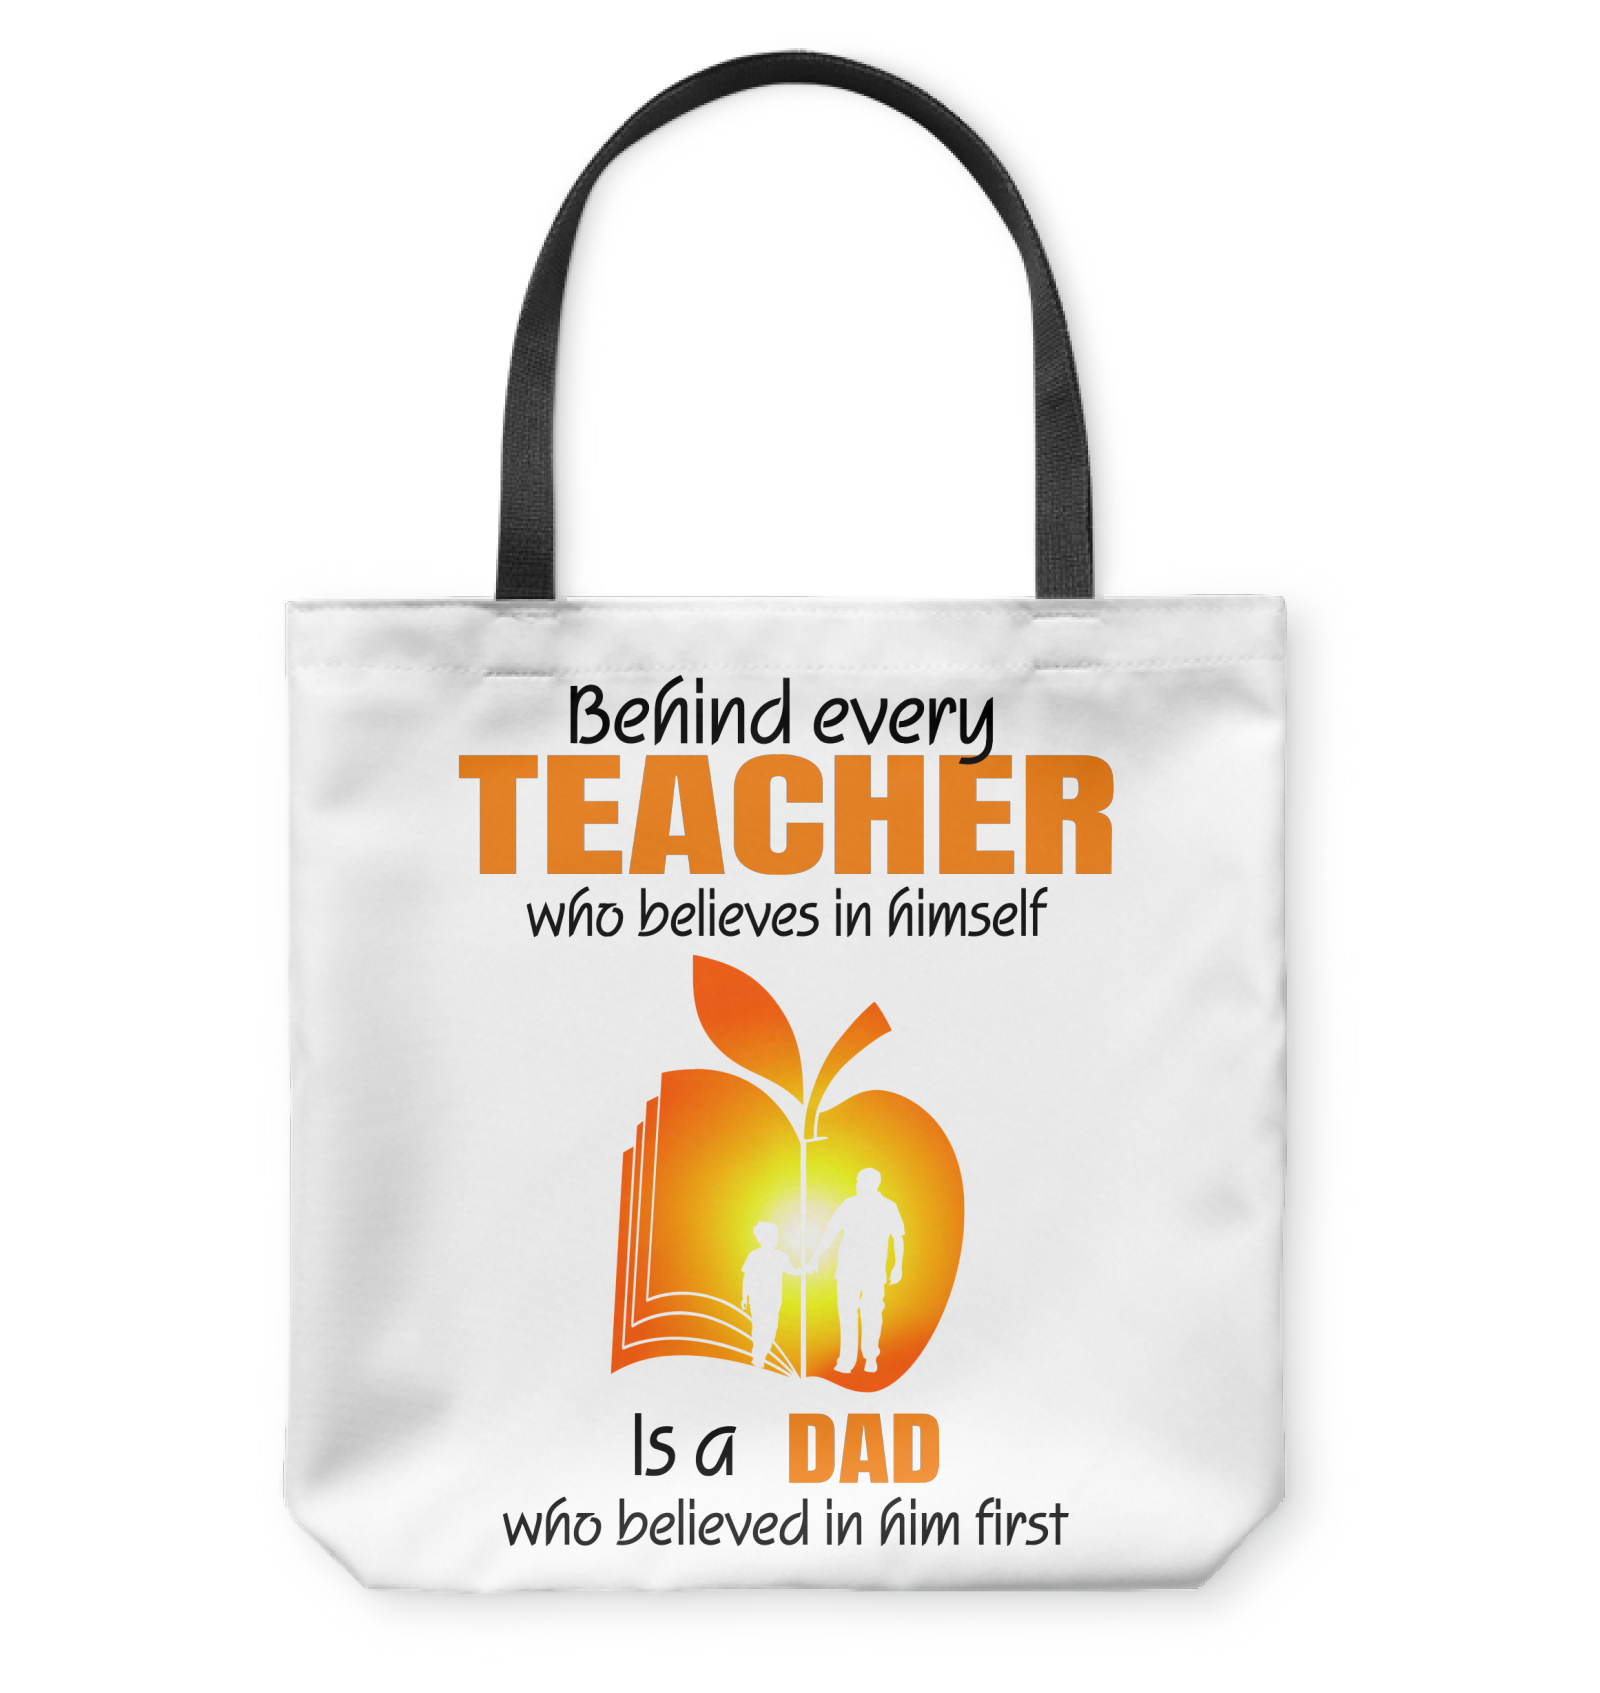 VIRA tote bag for awesome teachers & dads